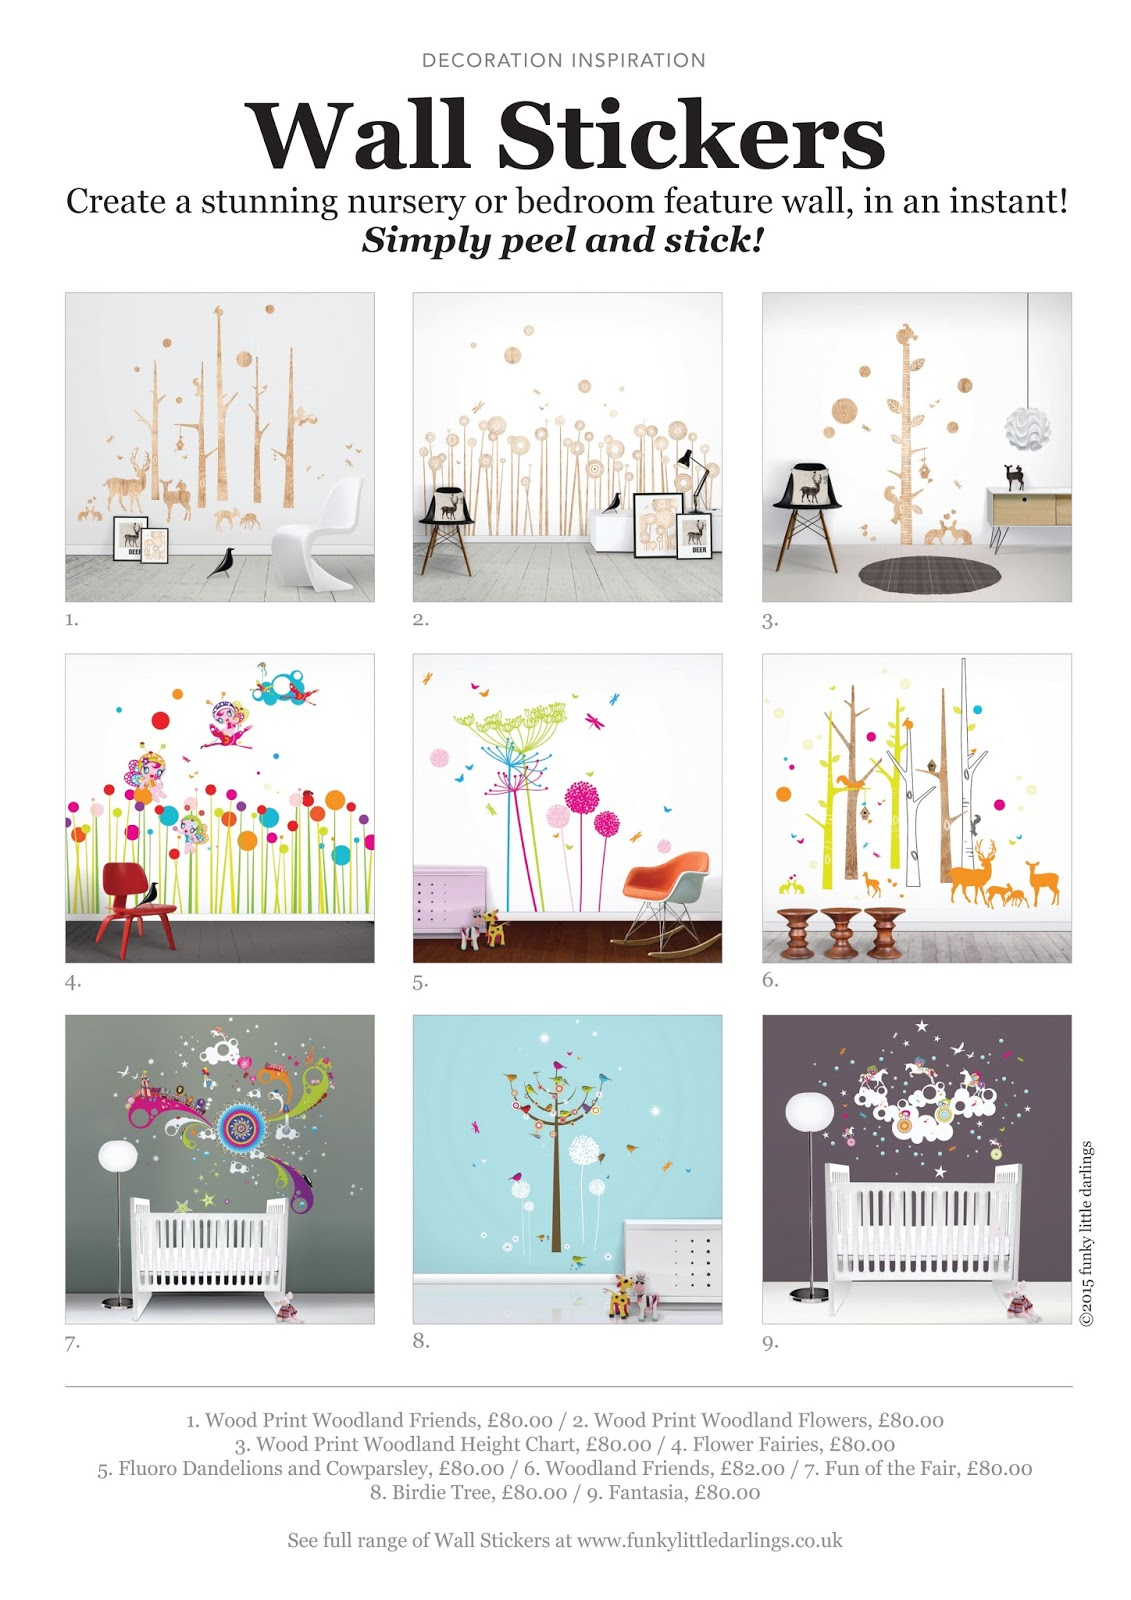 Funky Little Darlings' Giant Wall Stickers For A Feature Wall Mood Board